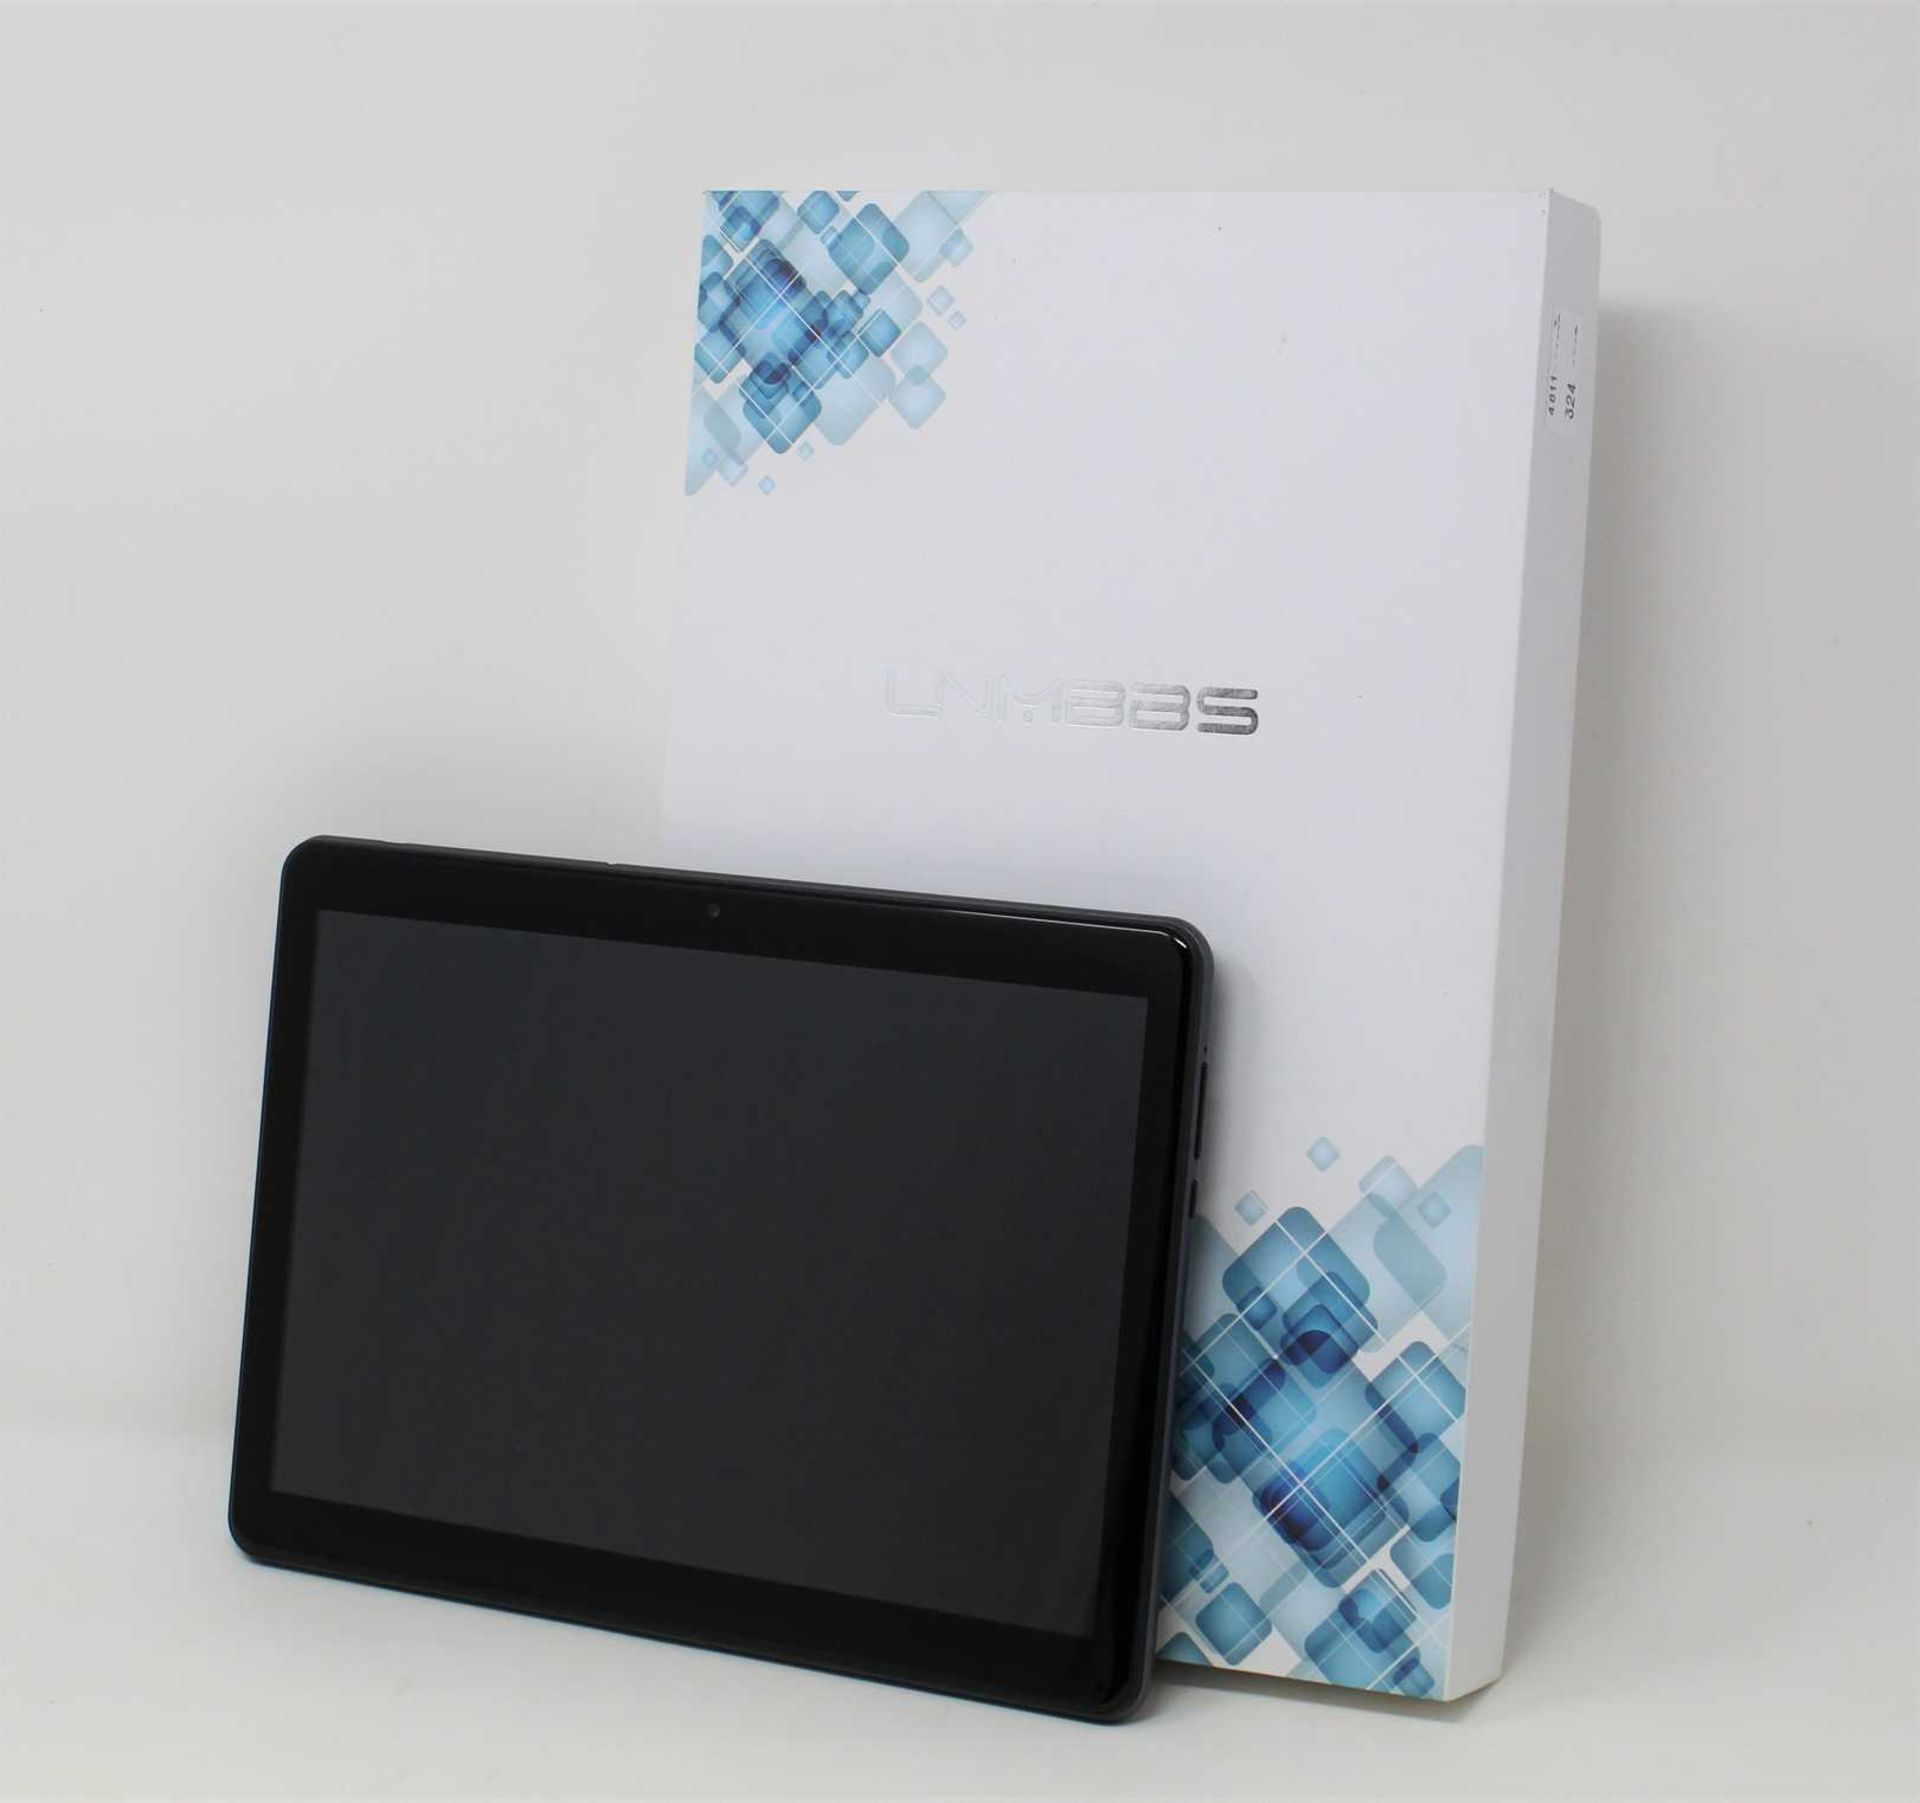 "A boxed as new LNMBBS K80 64GB Dual SIM 10.1"" Android Tablet in Grey (Box and accessories"